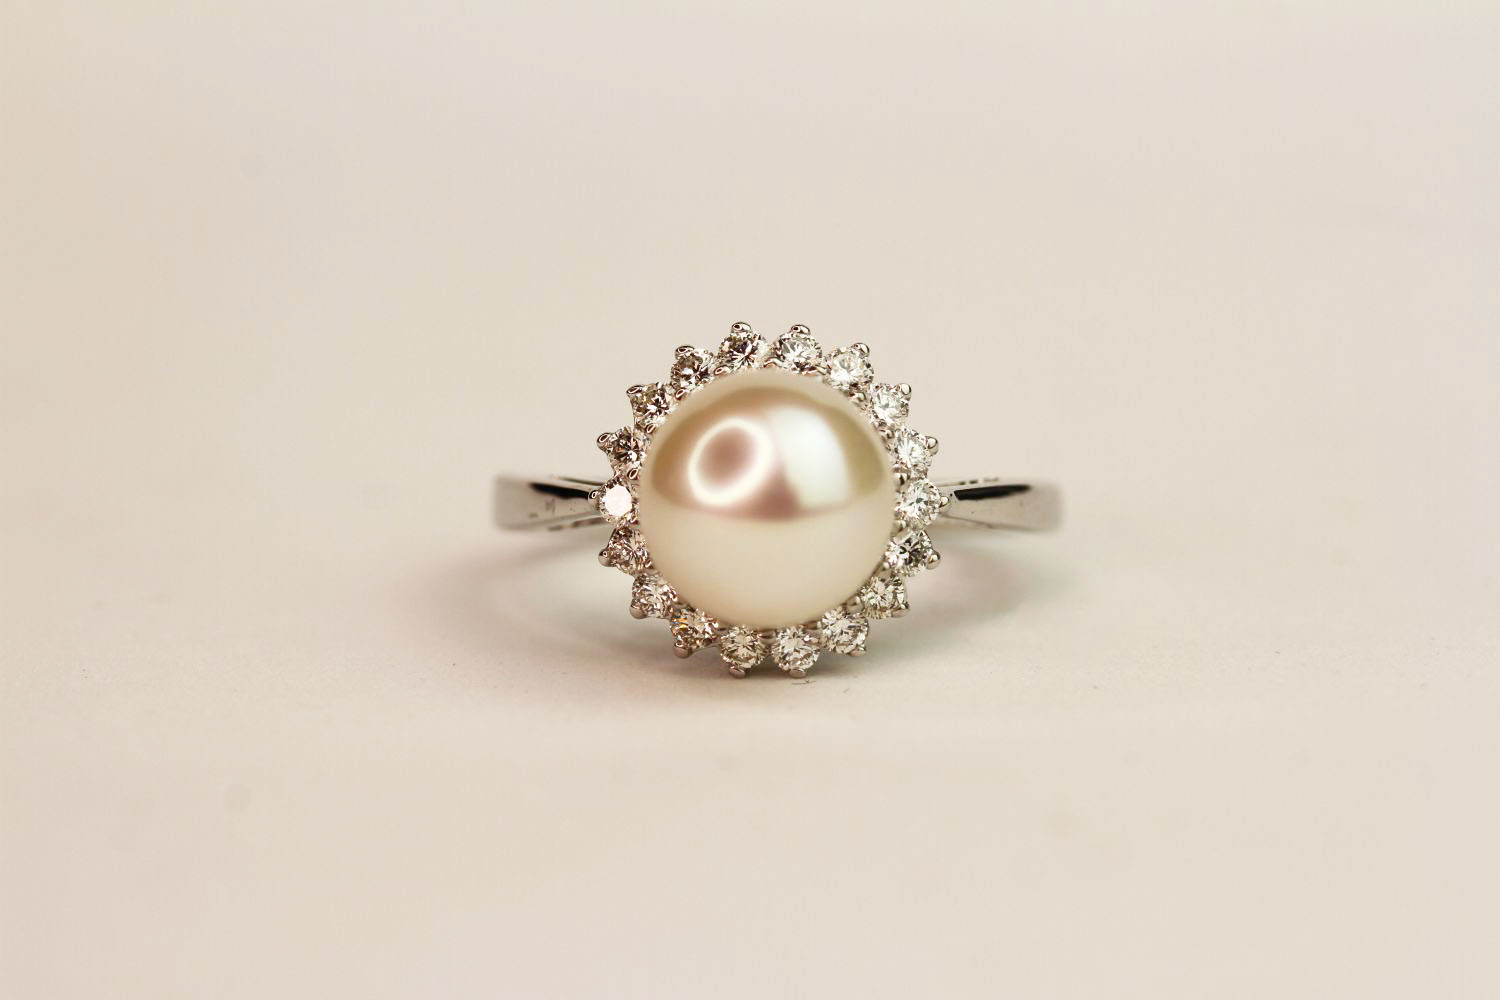 9ct white gold pearl and diamond halo ring. Diamonds 0.37ct, ring size N1/2.